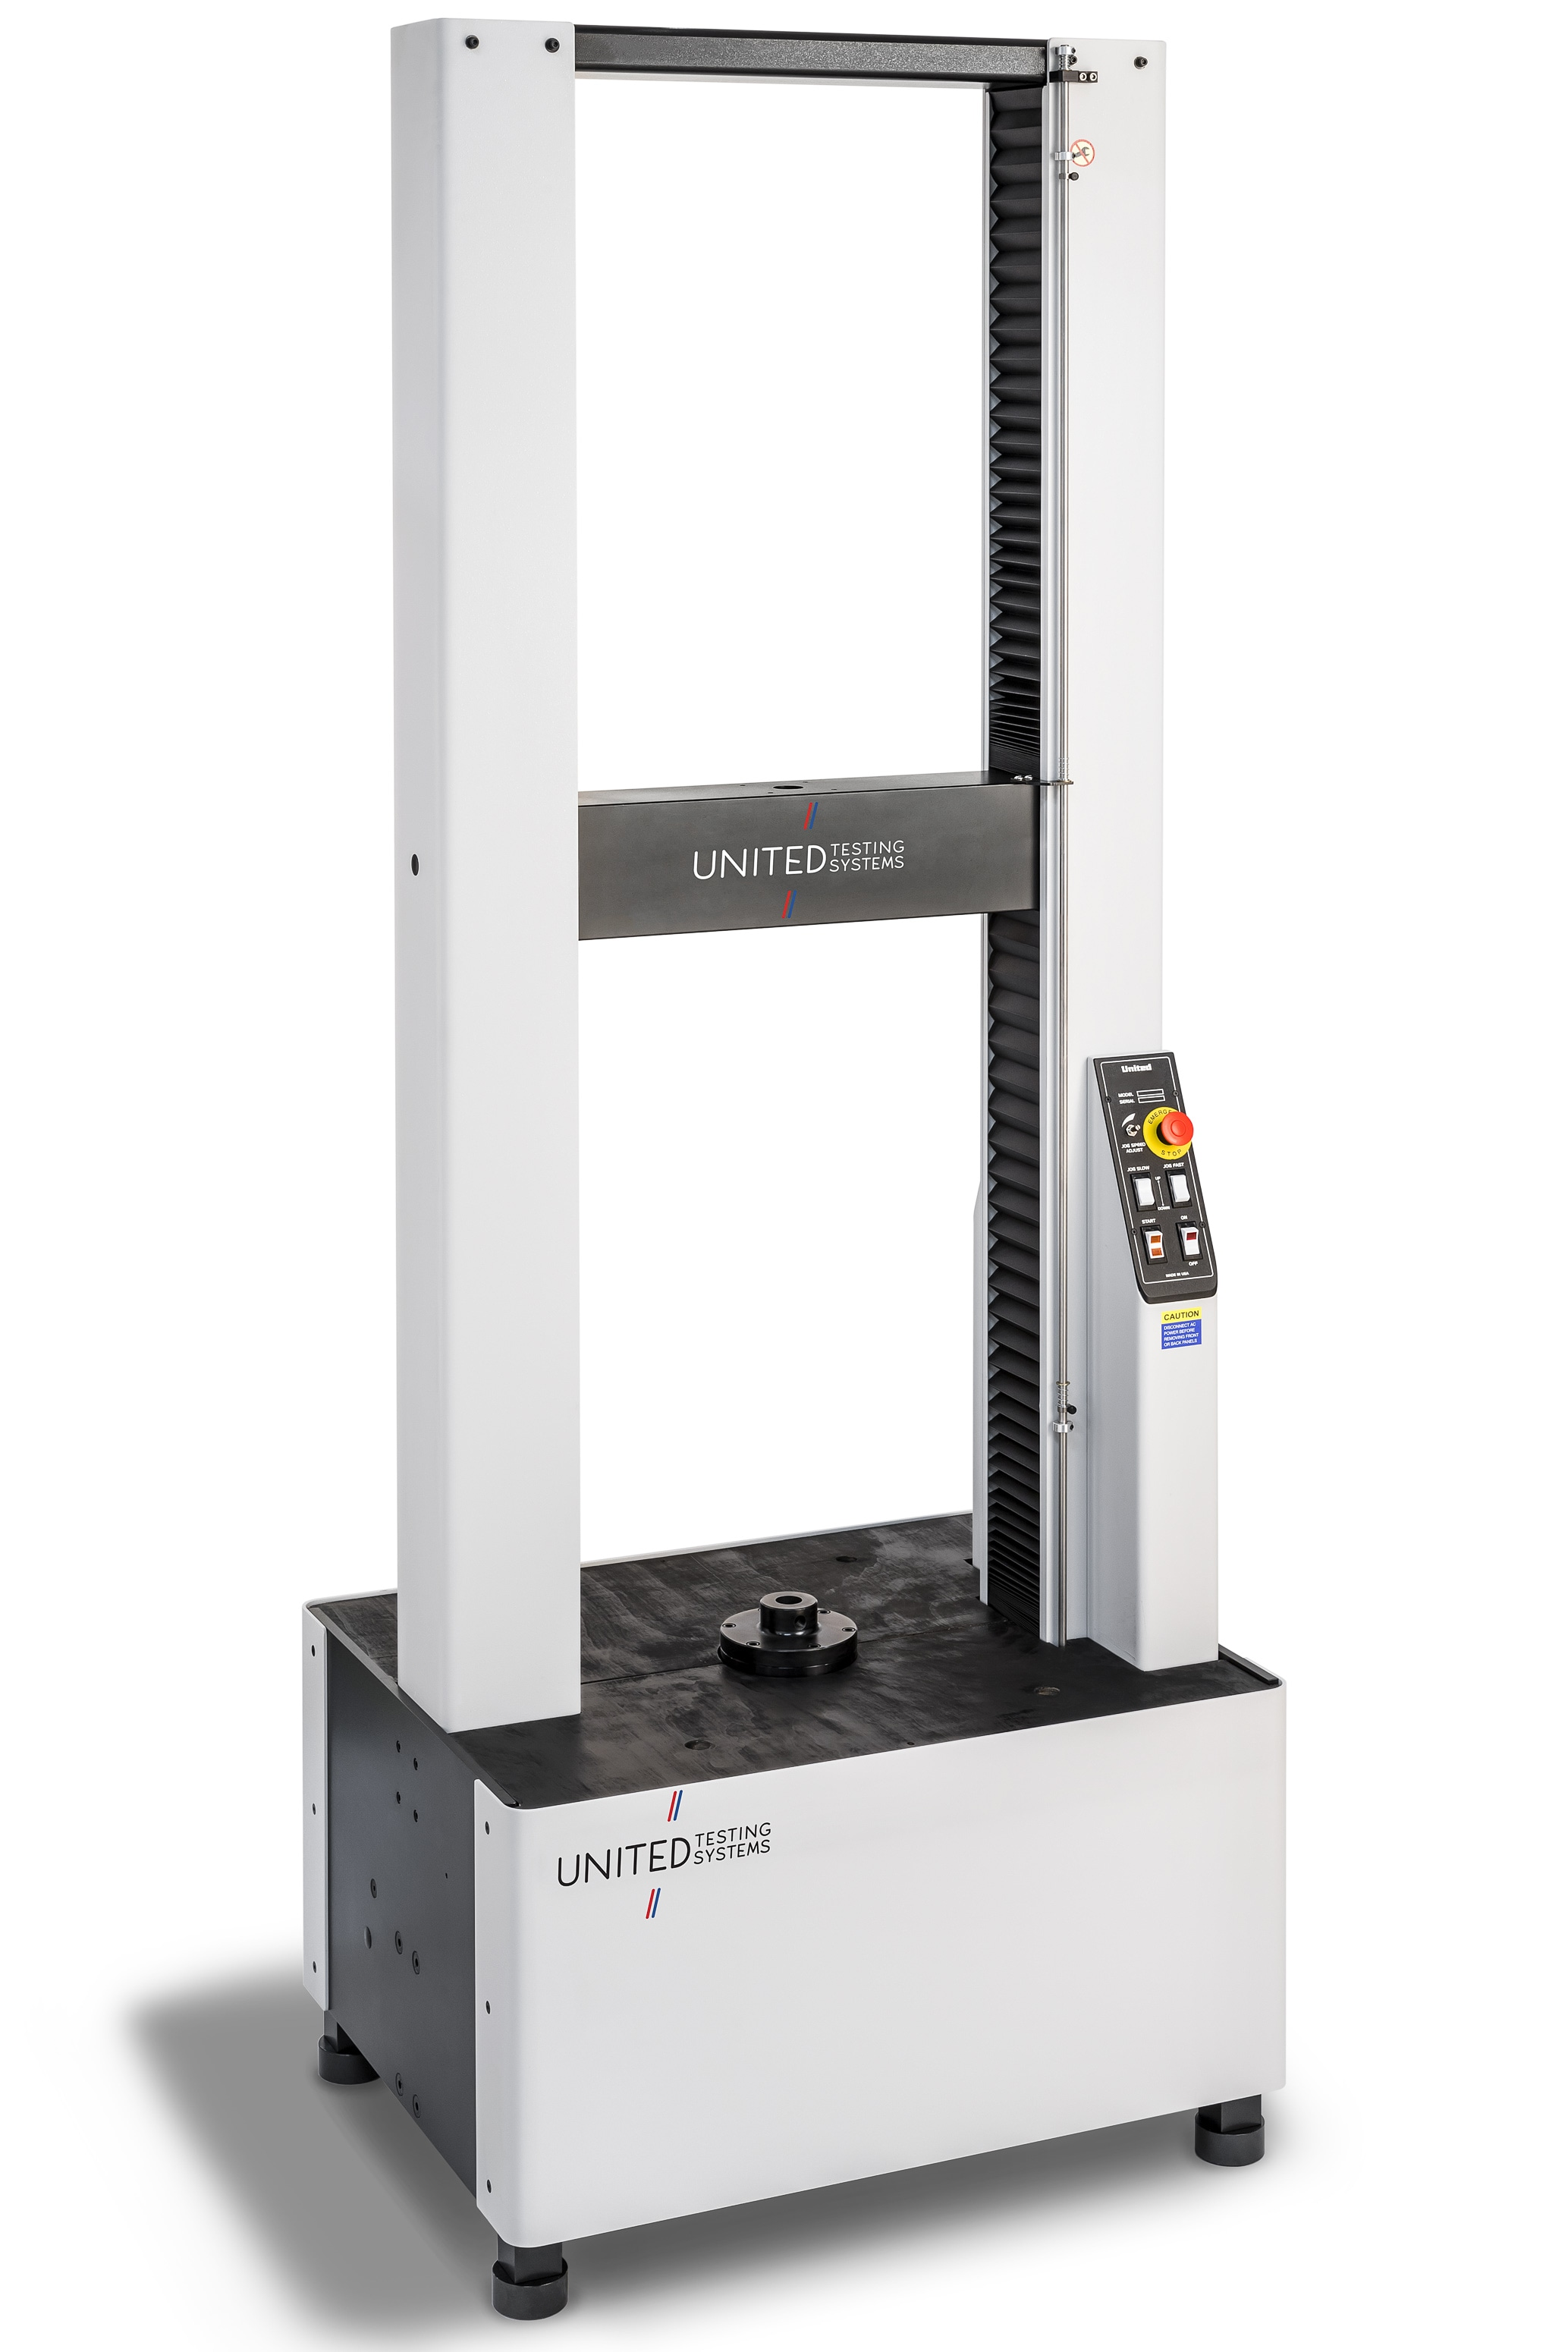 SSTM Smart Materials Testing System from United Testing Systems